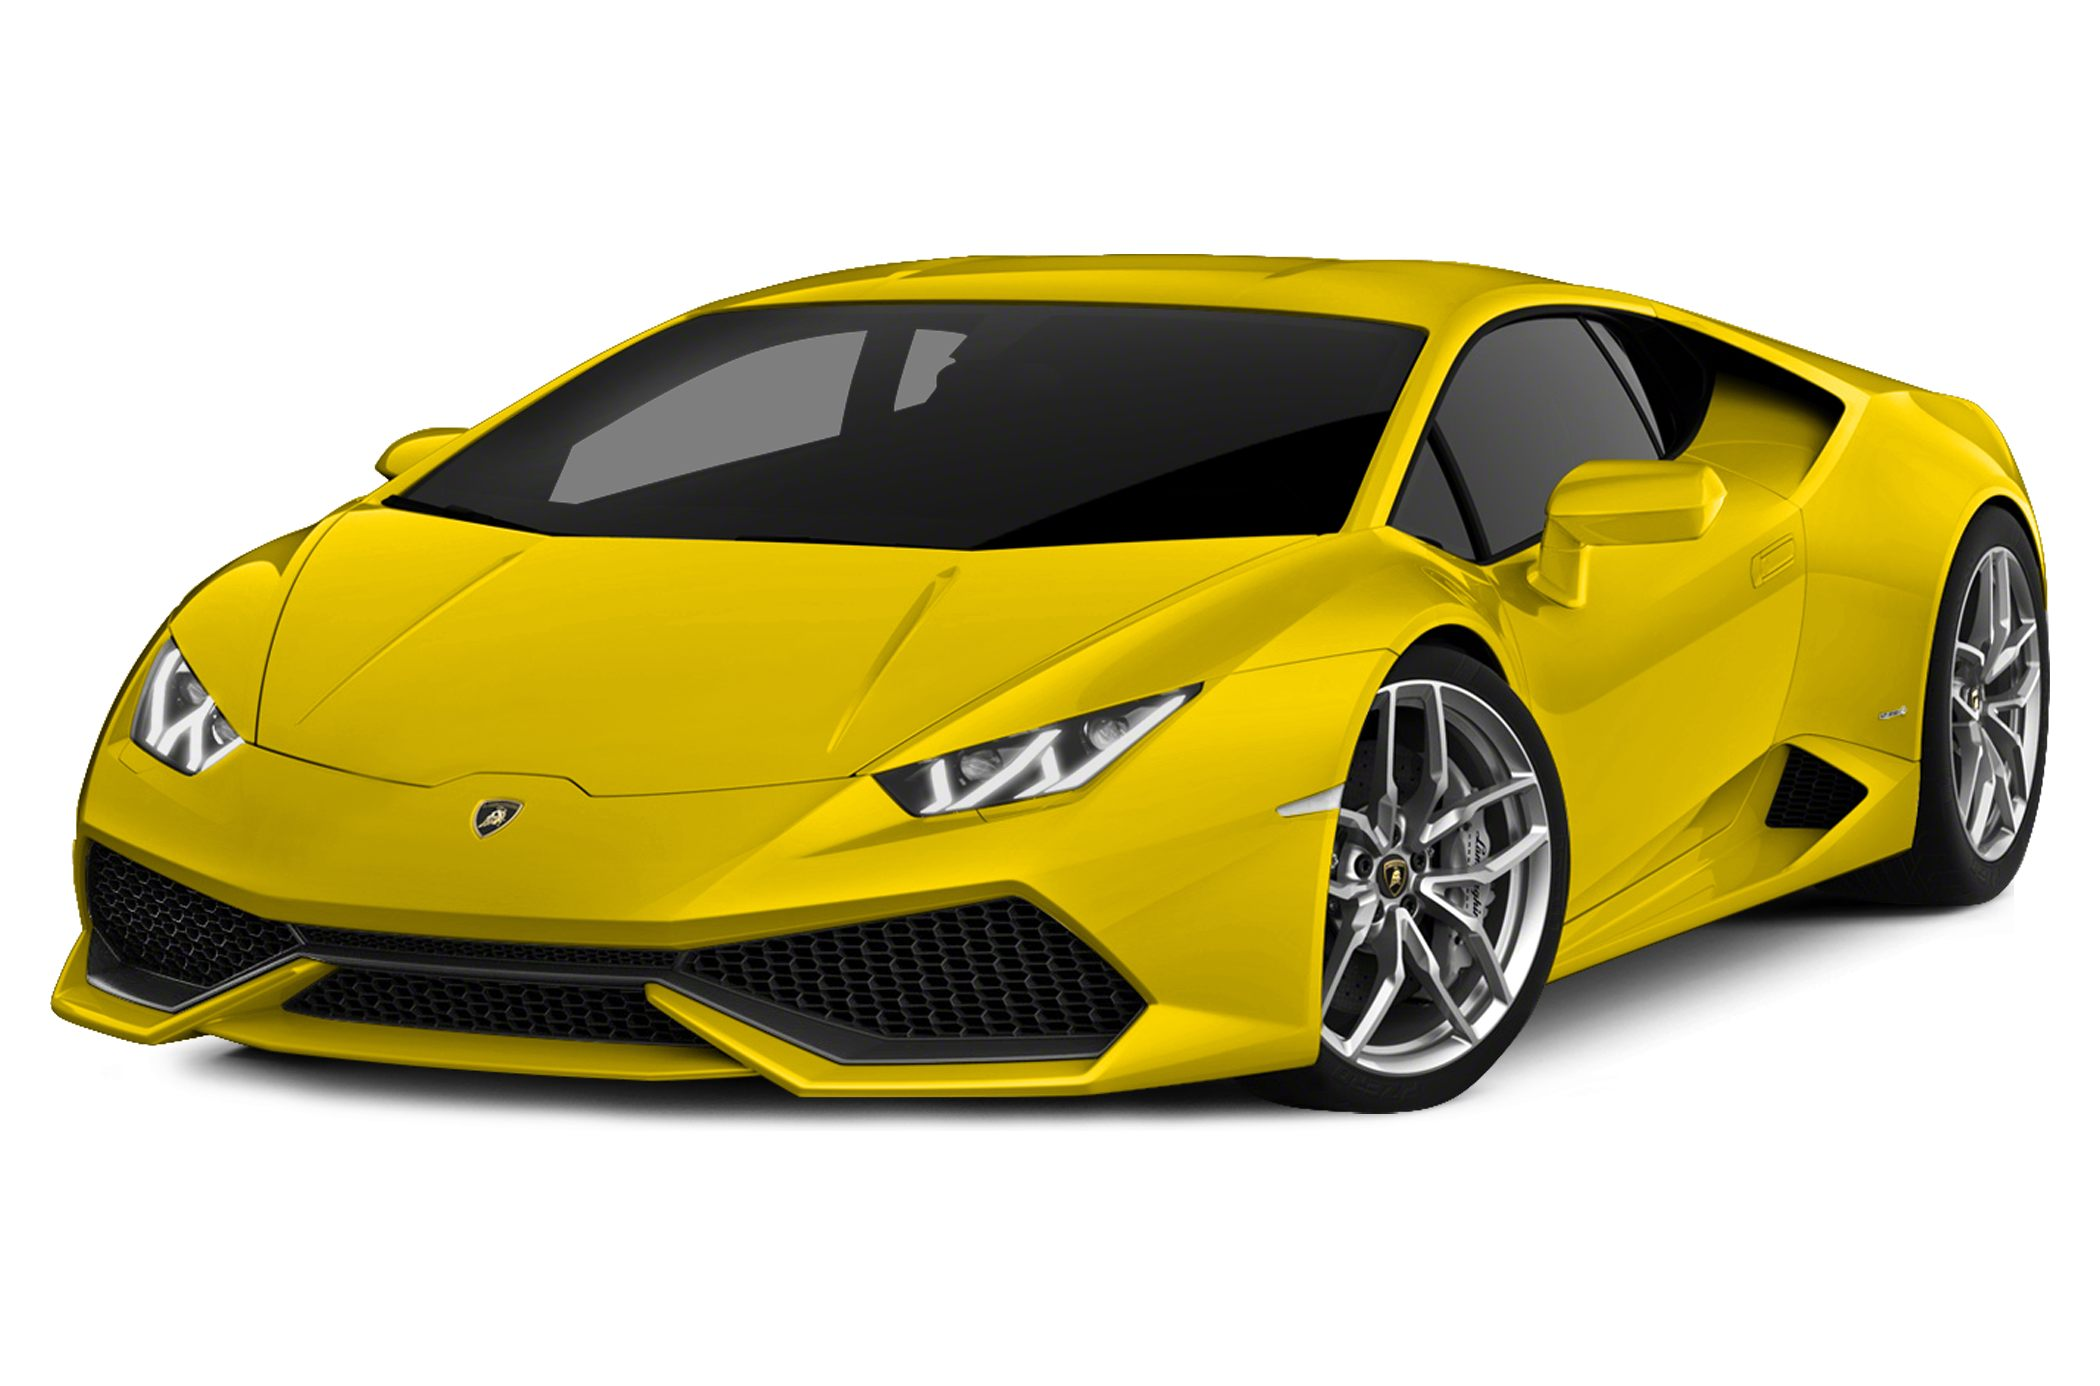 Lamborghini Downshifts Toward Record Sales